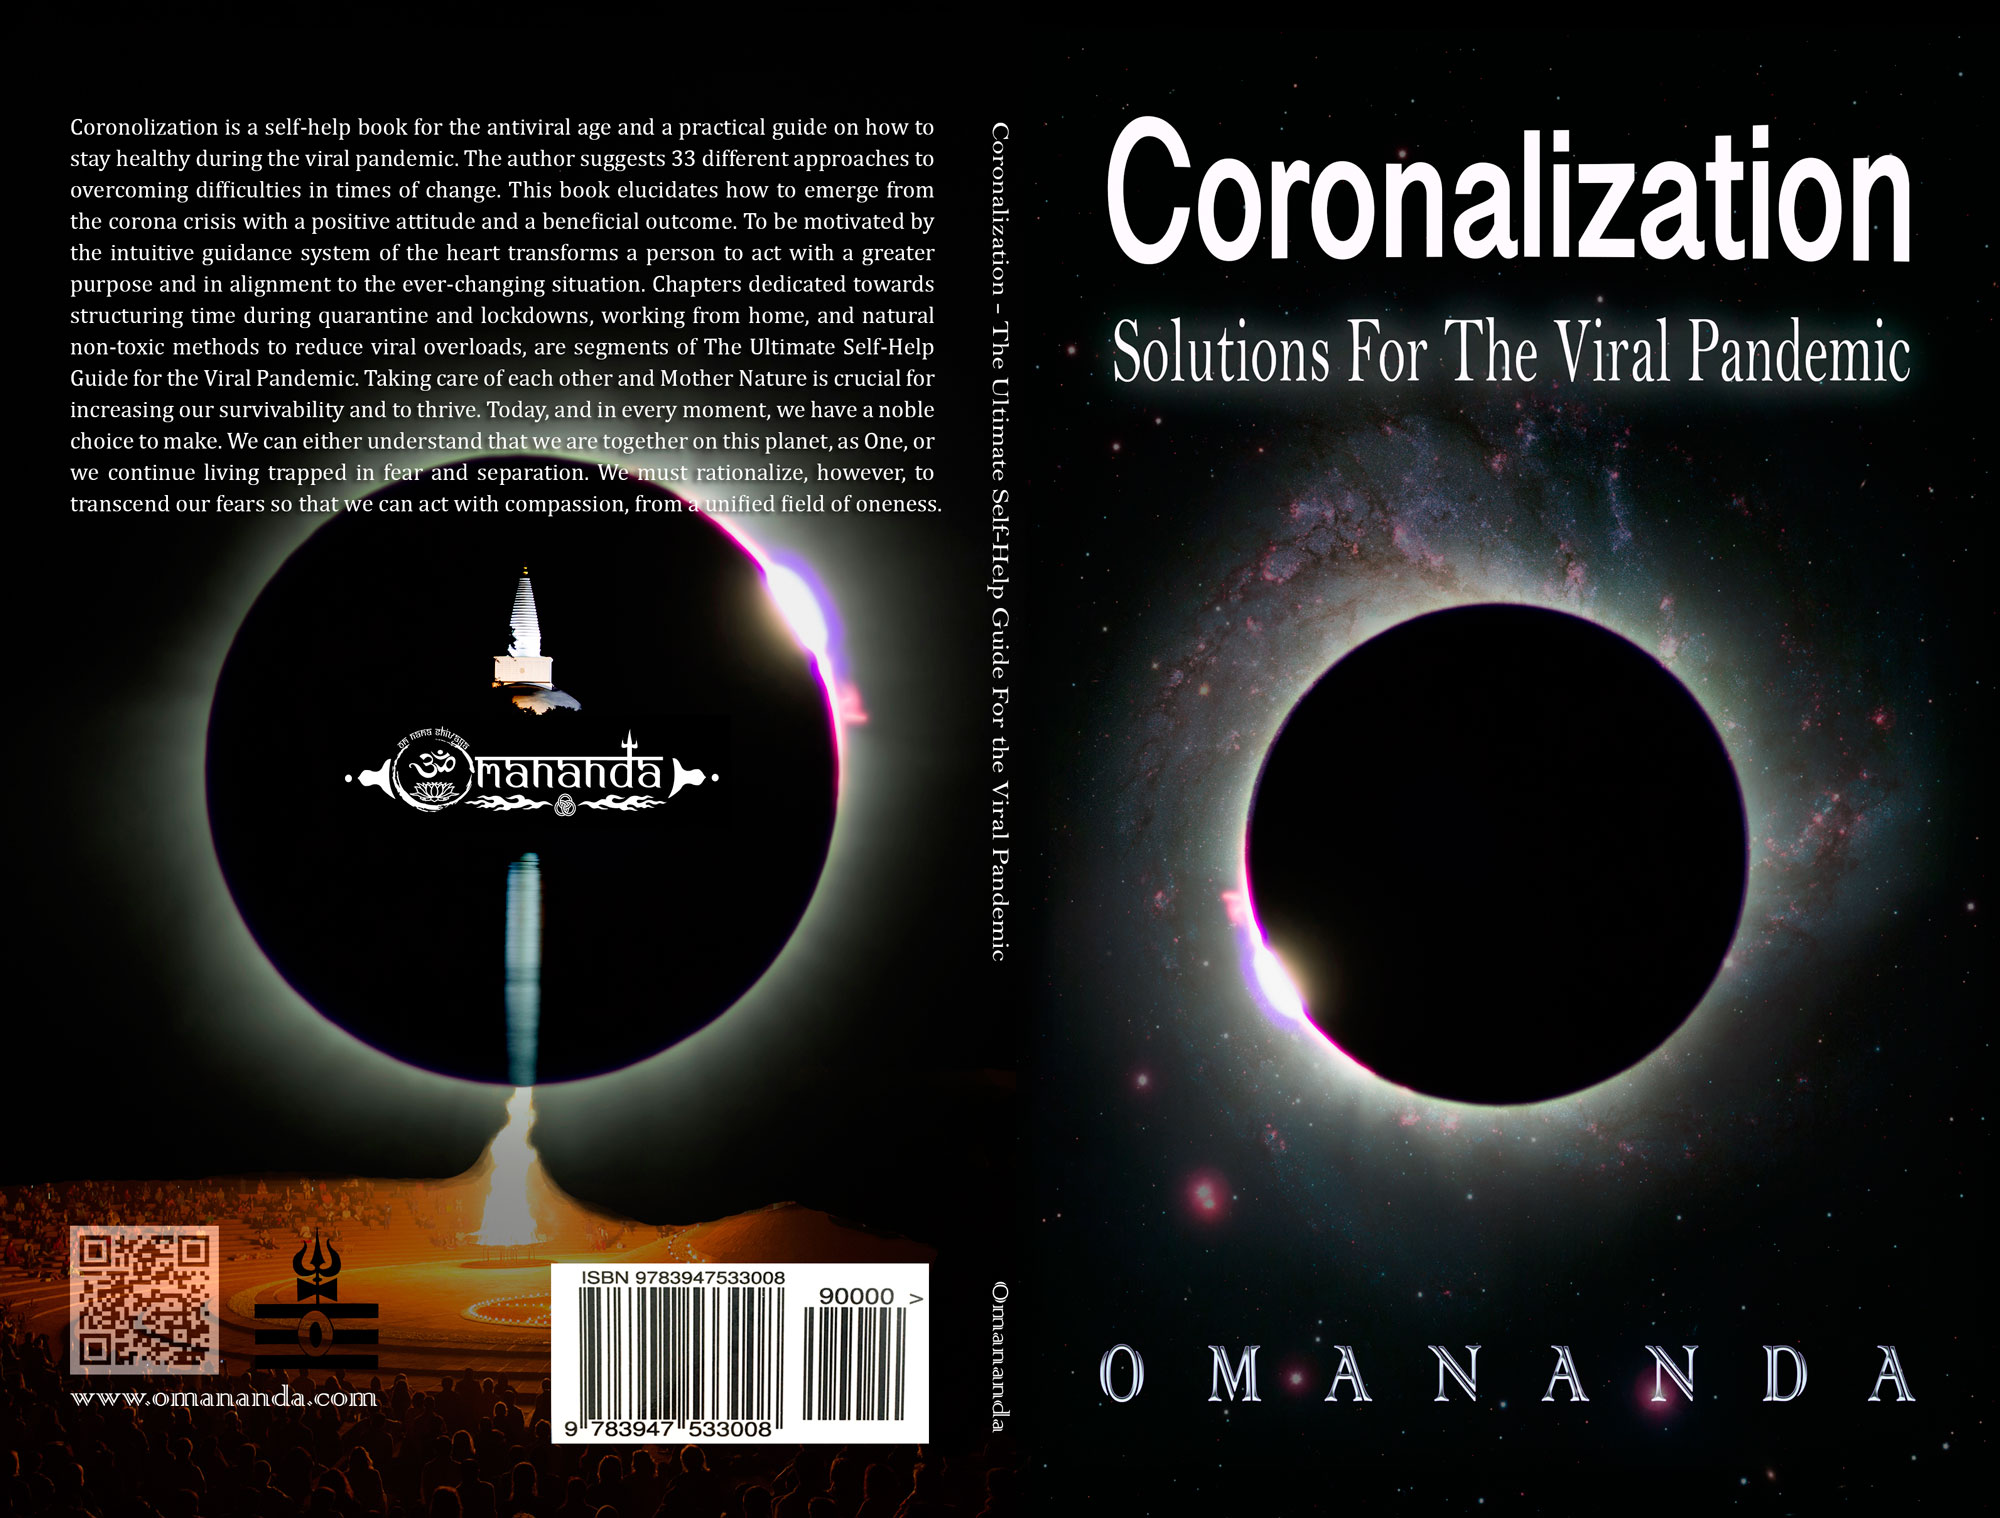 Latest Omananda Book has been released